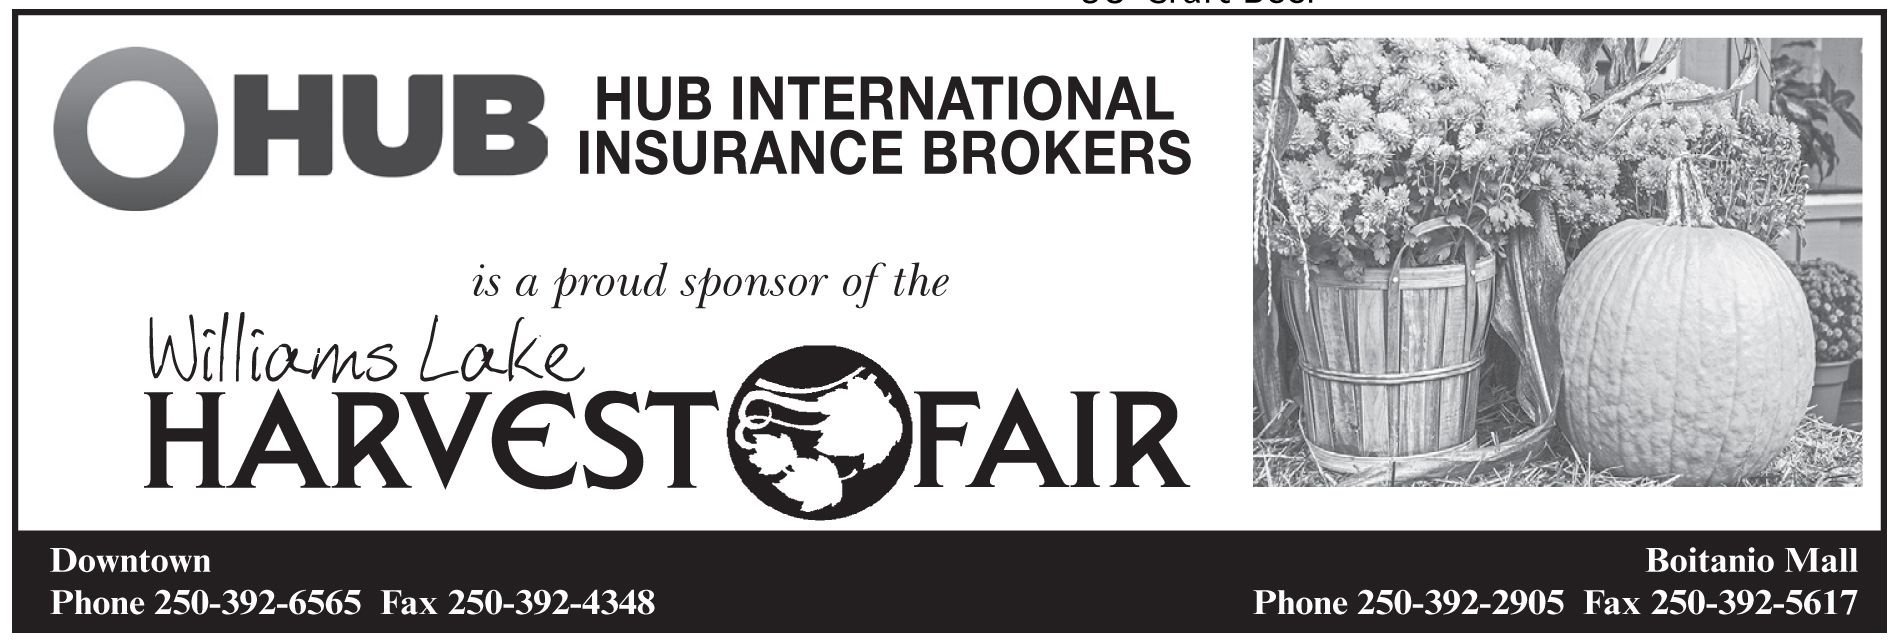 Please take a moment to visit one of our wonderful sponsor's, HUB International Insurance Brokers, Williams Lake